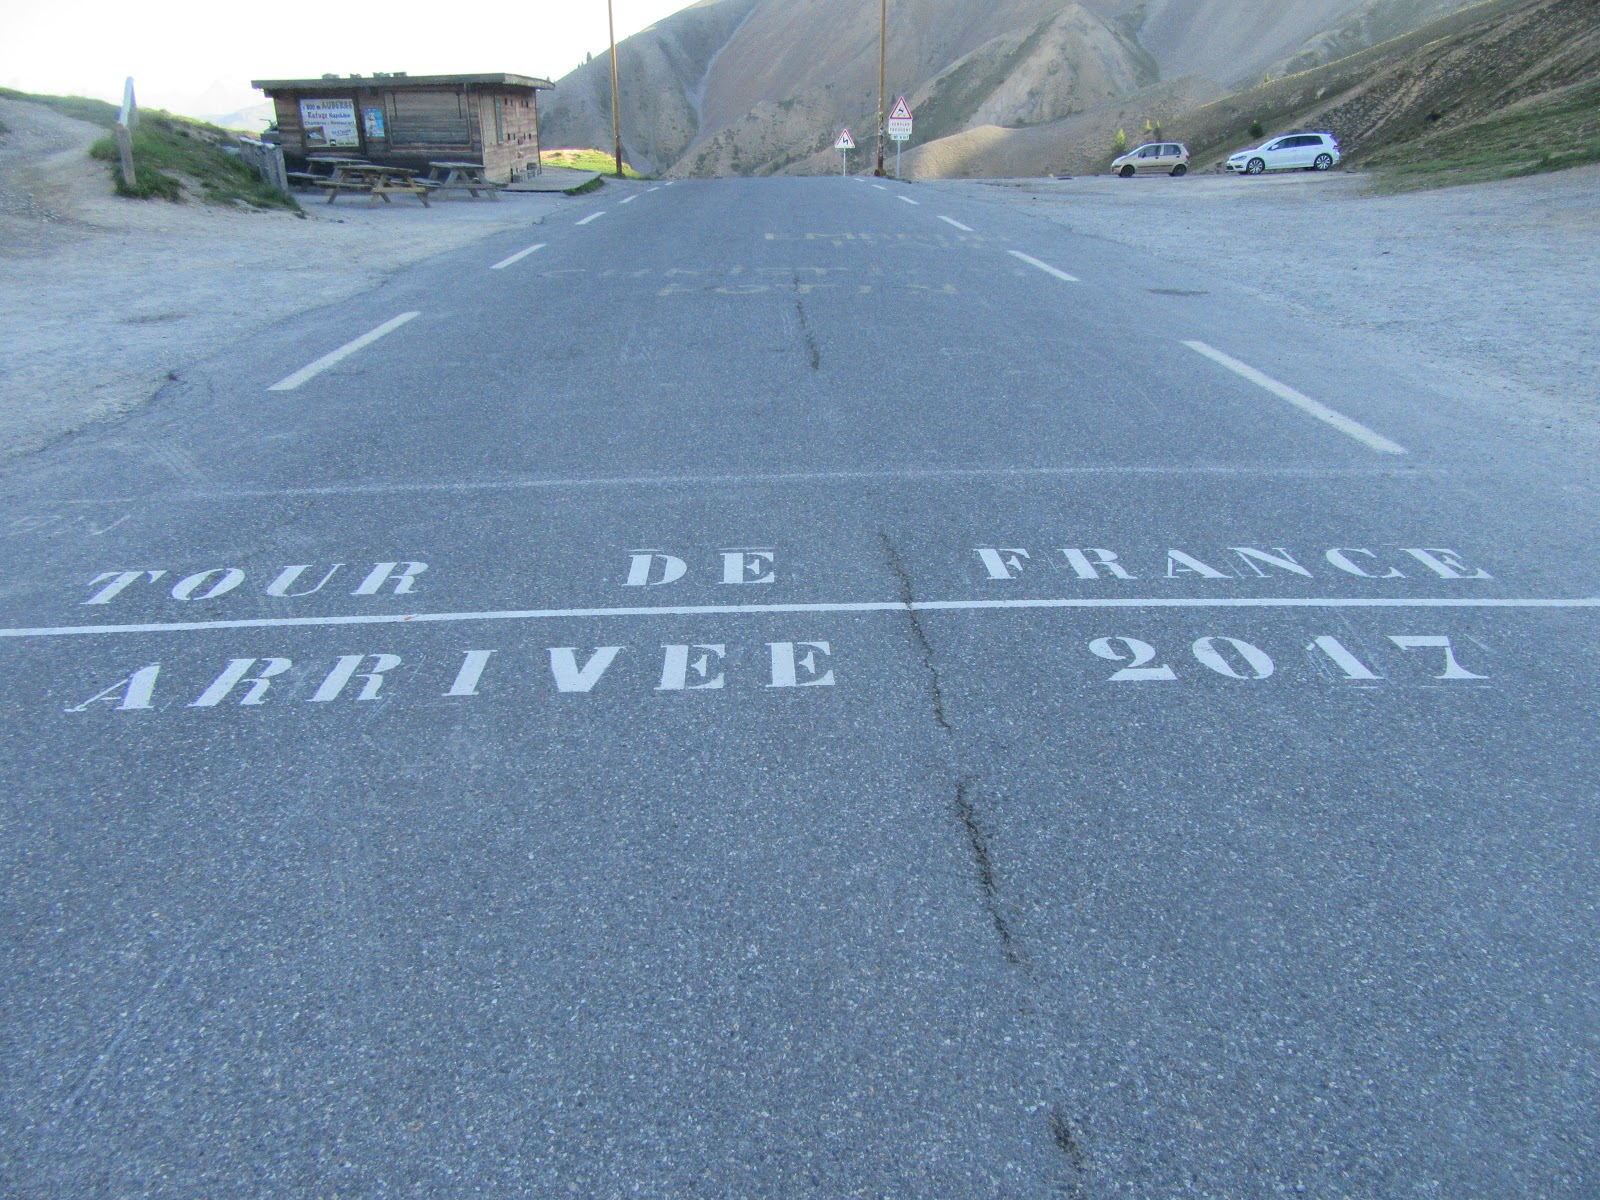 Bicycling to Col d'Izoard Guillestre - Tour de France writing on roadway at the col